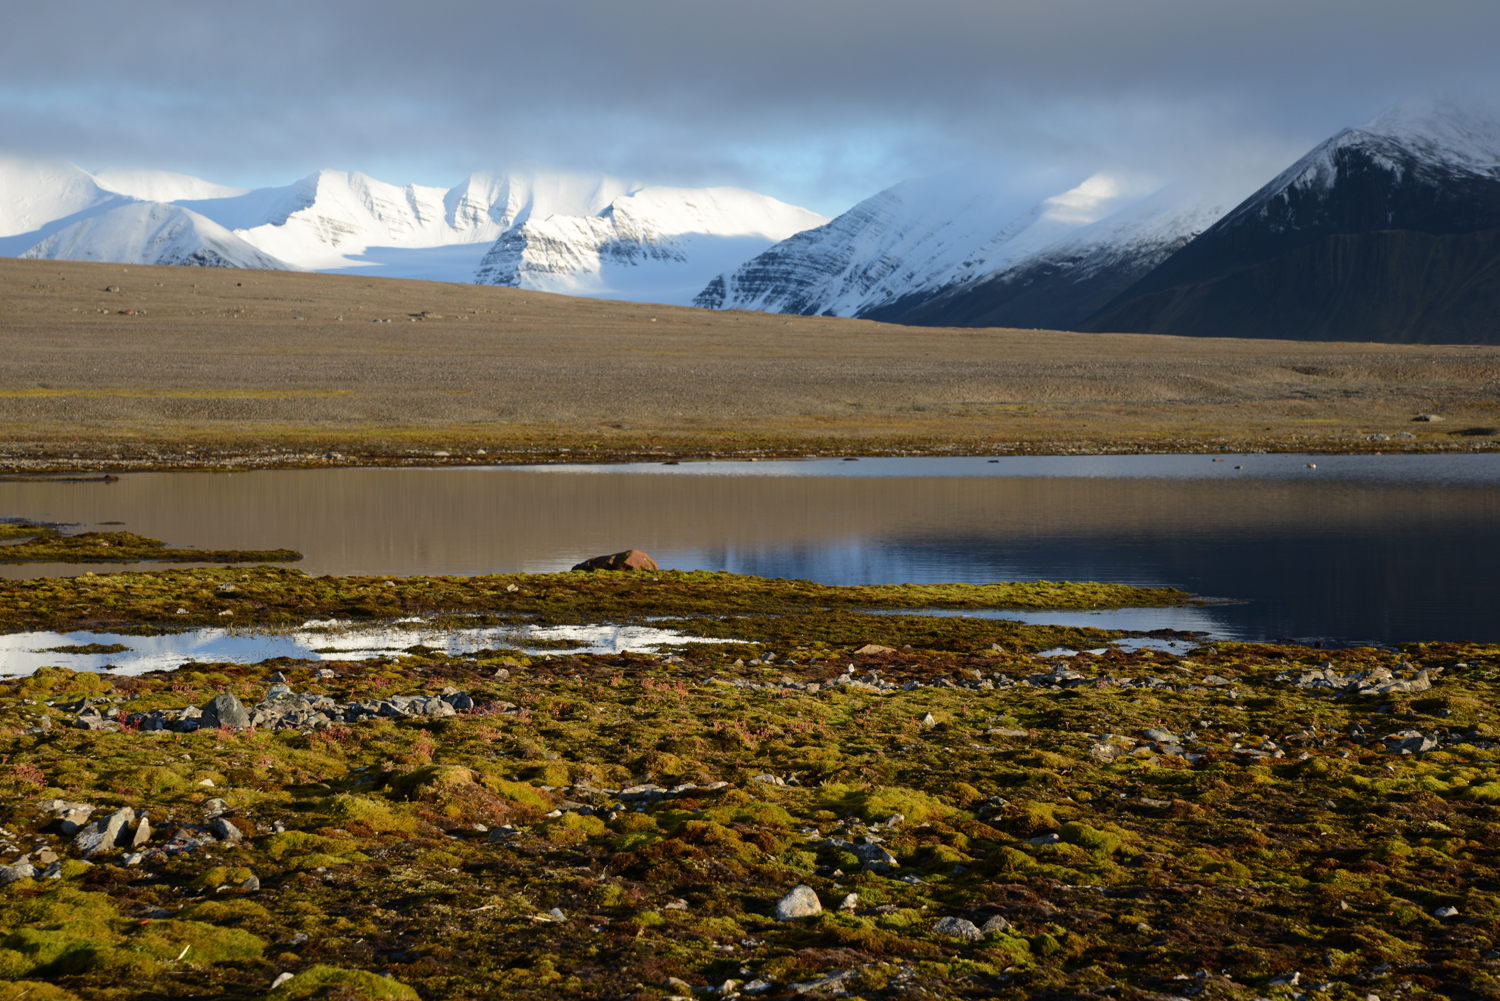 Alaska permafrost thawing, Siberia frozen peat bogs Pictures of tundra climate